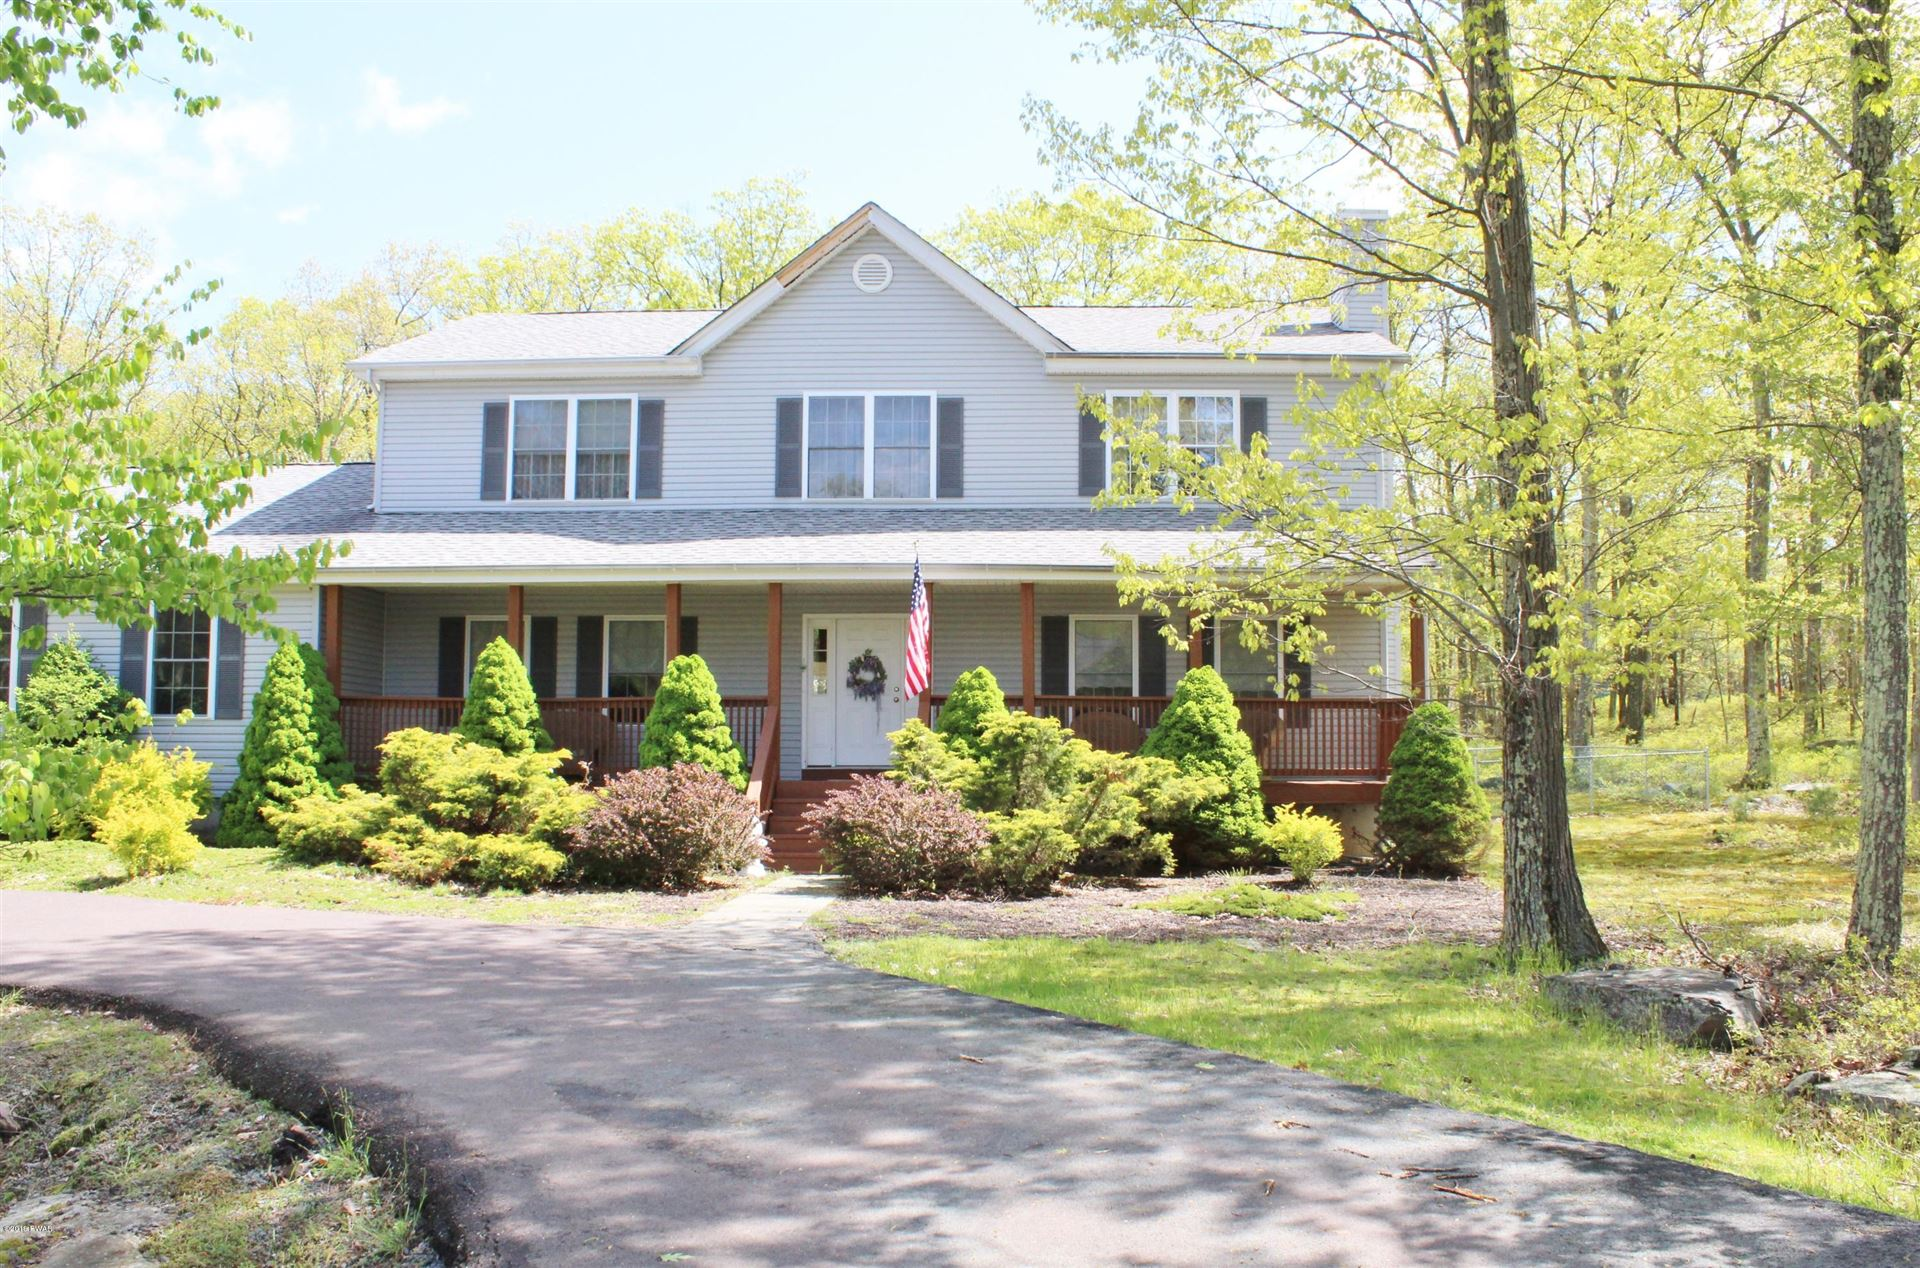 Photo of 126 Marquise Dr, Tafton, PA 18464 (MLS # 19-2102)